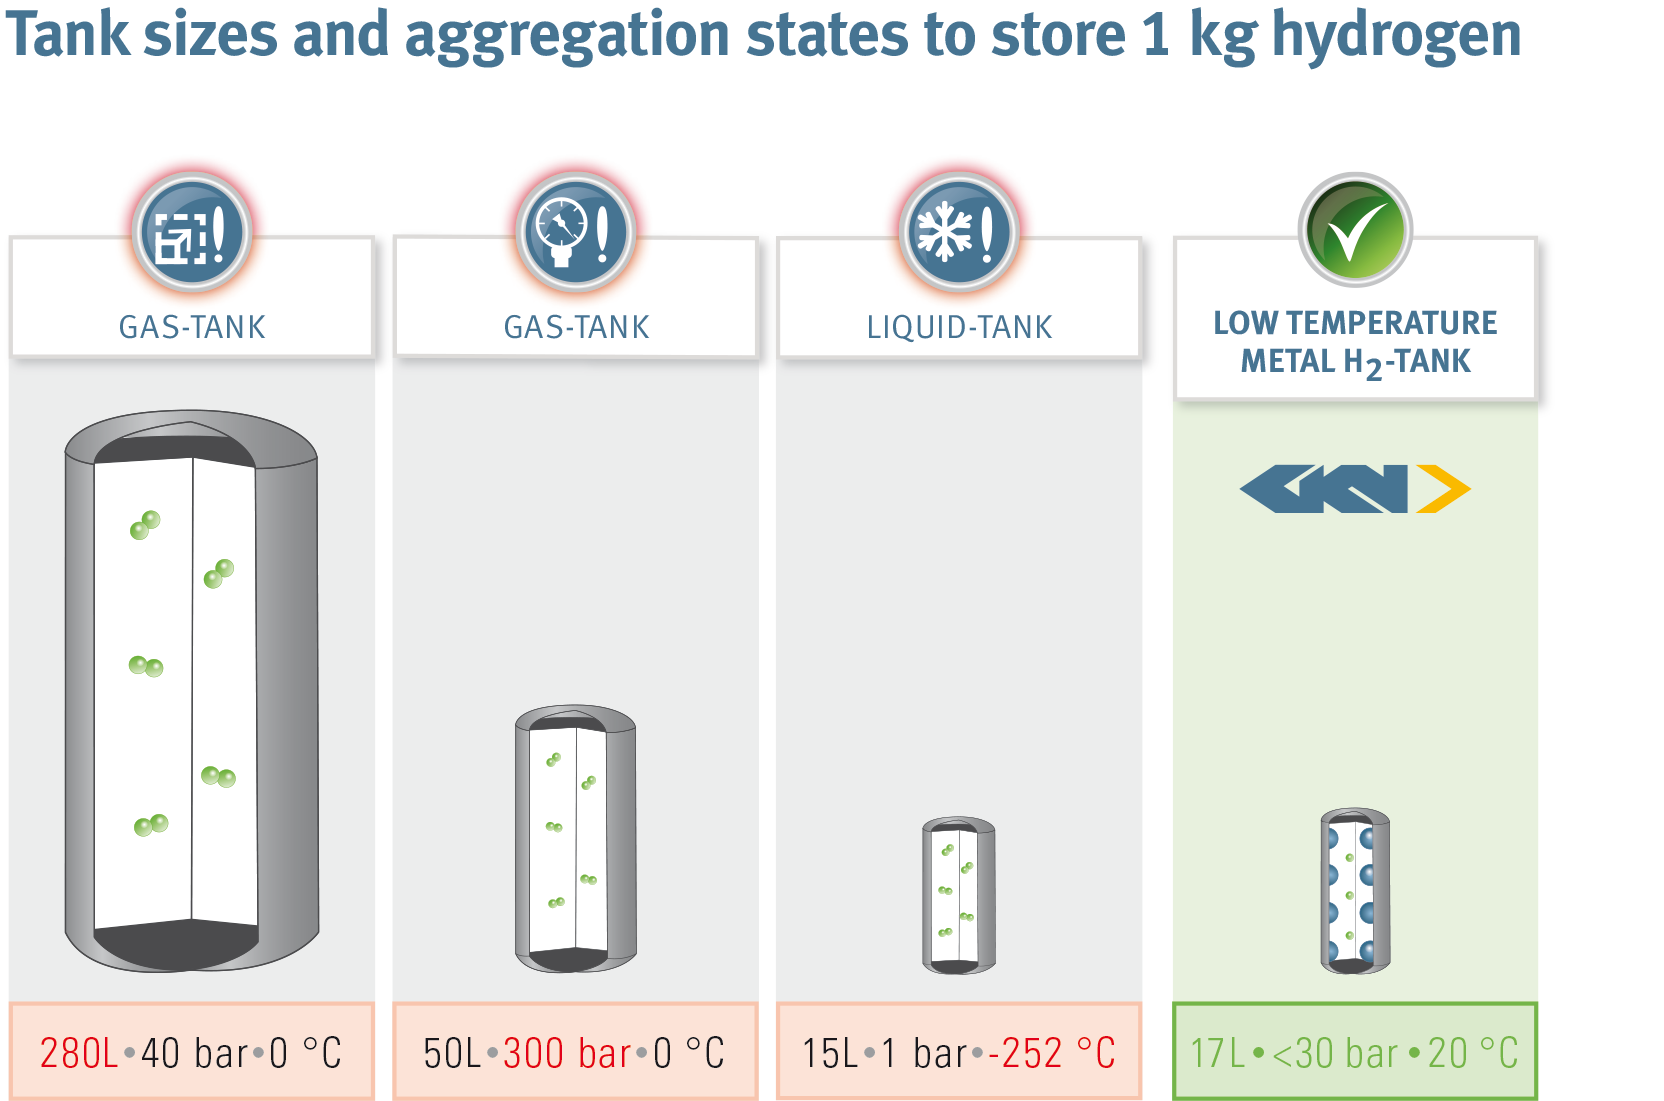 smaller tank size with metal hydride based hydrogen storage